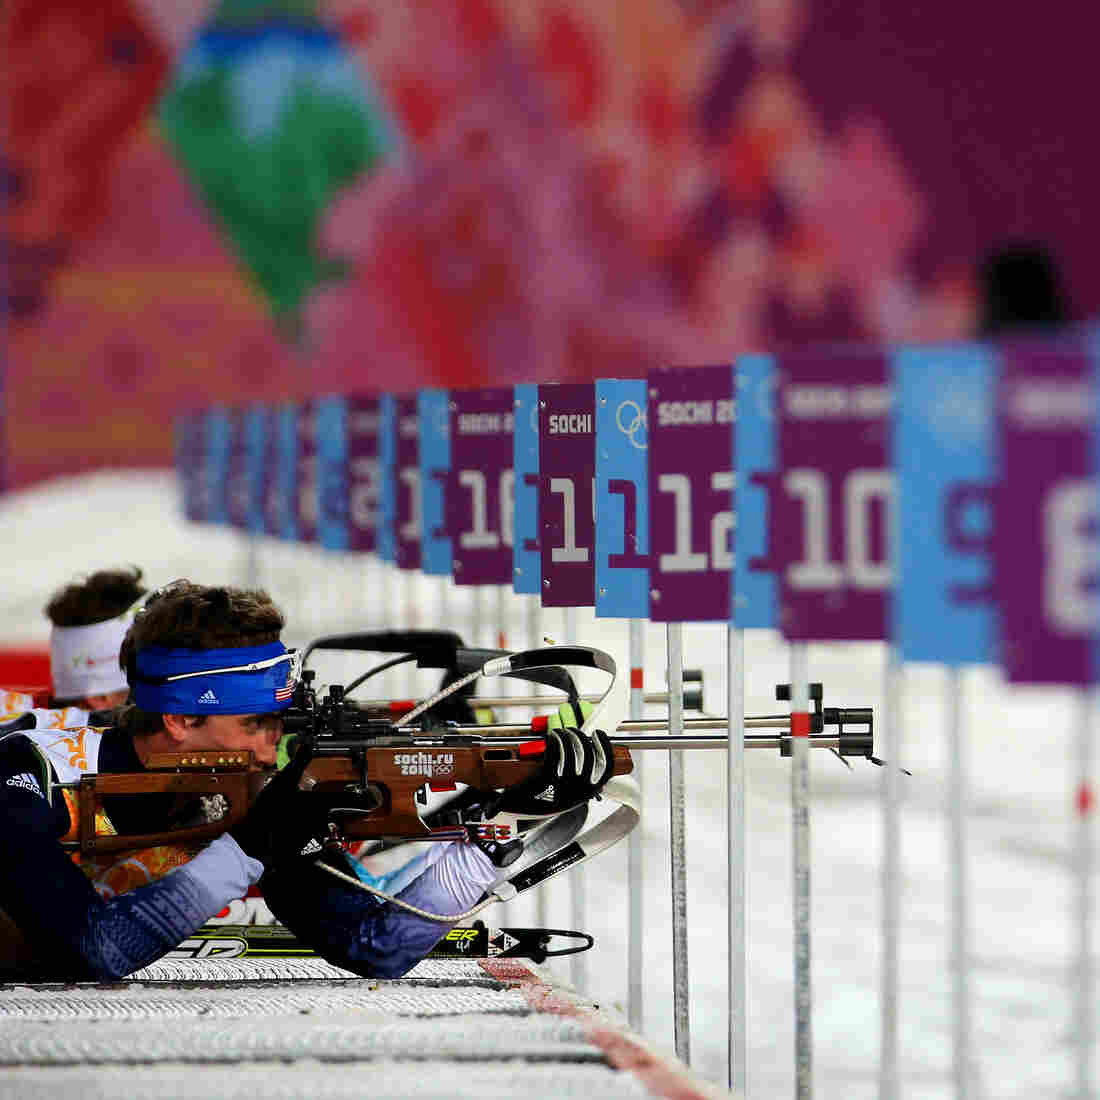 Sean Doherty of the United States competes during the Men's 4 x 7.5 km Relay on Saturday at the Sochi 2014 Winter Olympics at Laura Cross-country Ski & Biathlon Center in Sochi, Russia.